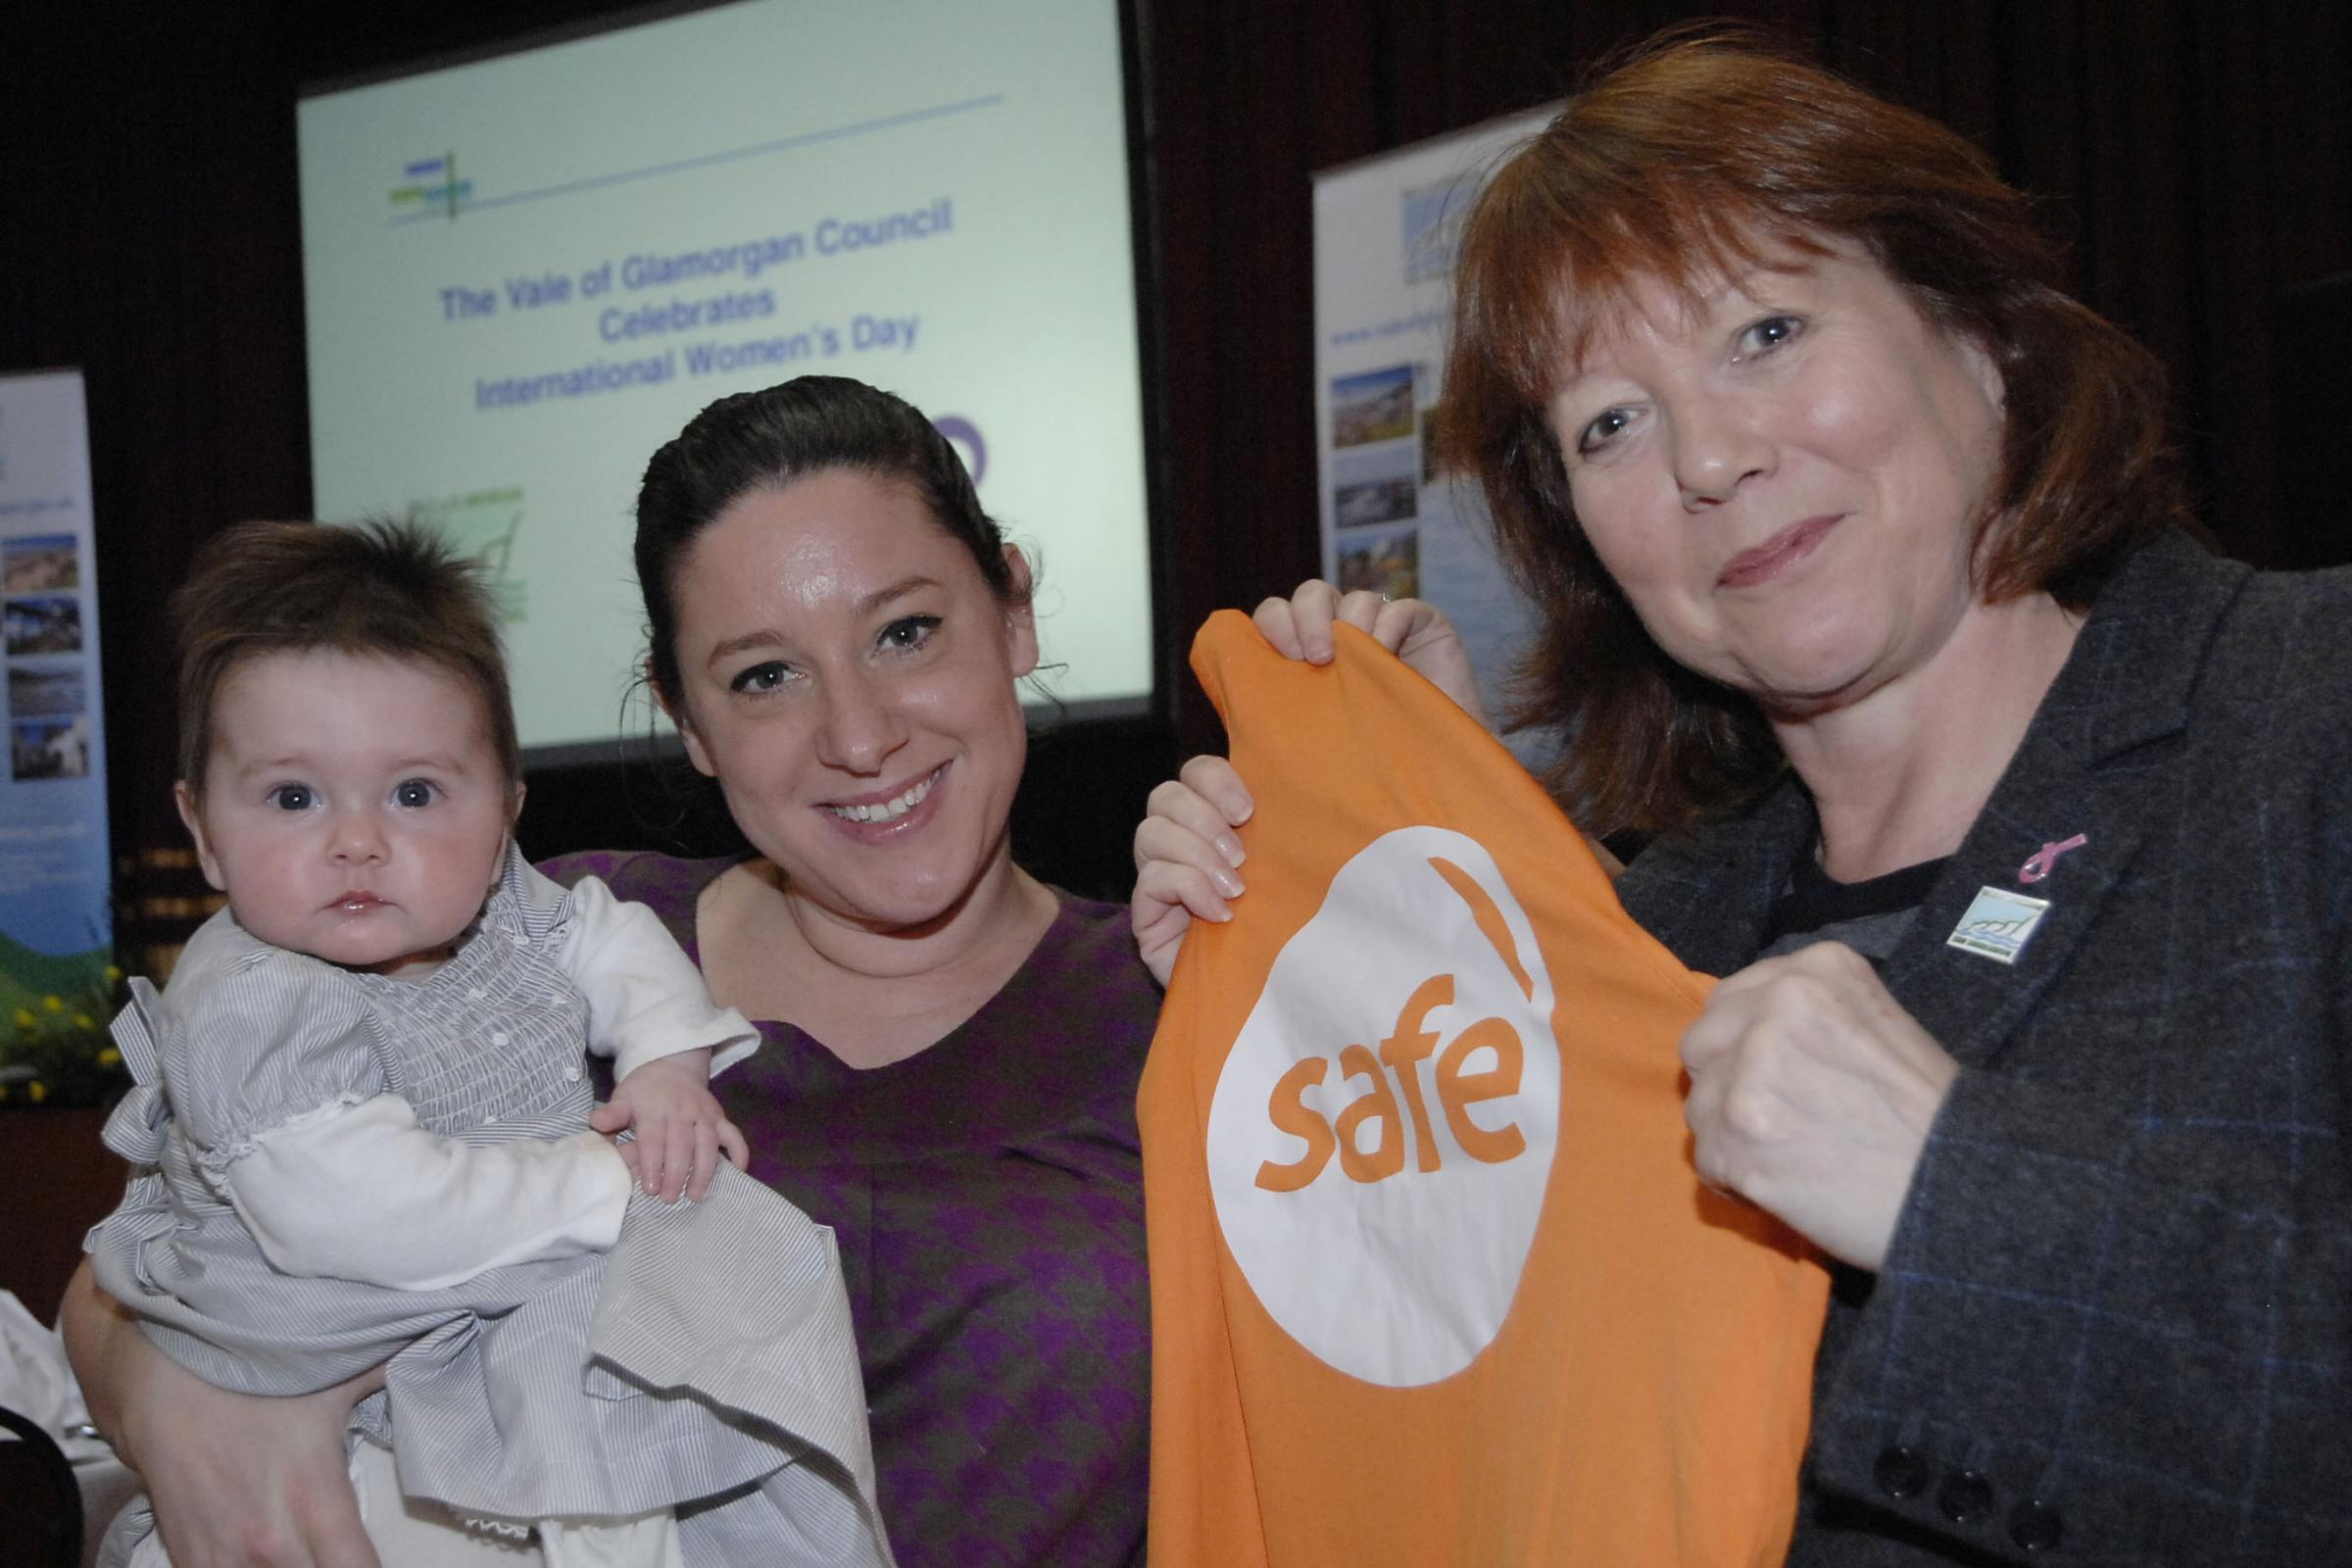 CHARITY: Councillor Lis Burnett (right) with The Safe Foundation co-founder Hannah Fitt and her daughter Matilda